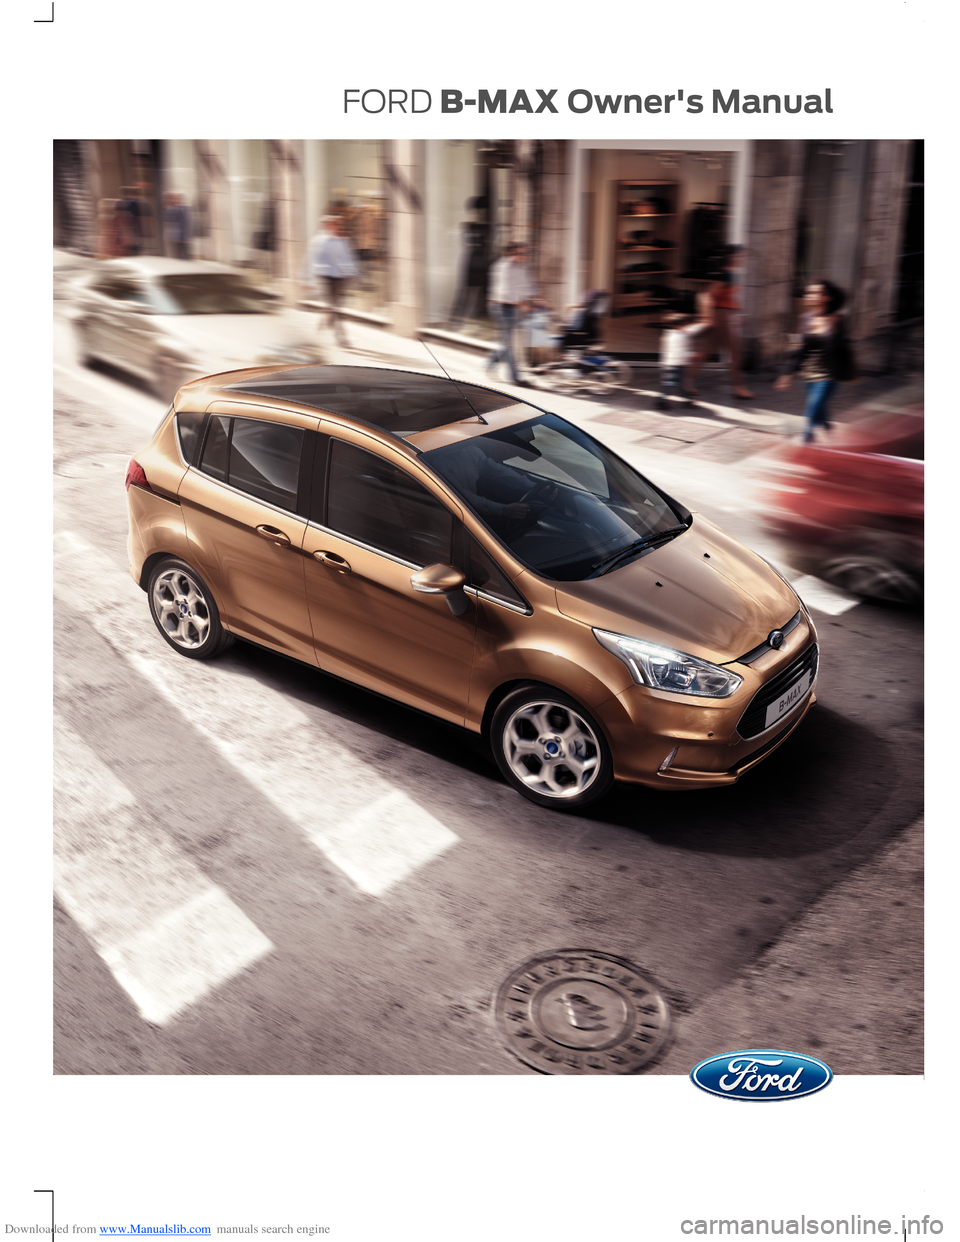 FORD B MAX 2013 1.G Owners Manual, Page 1